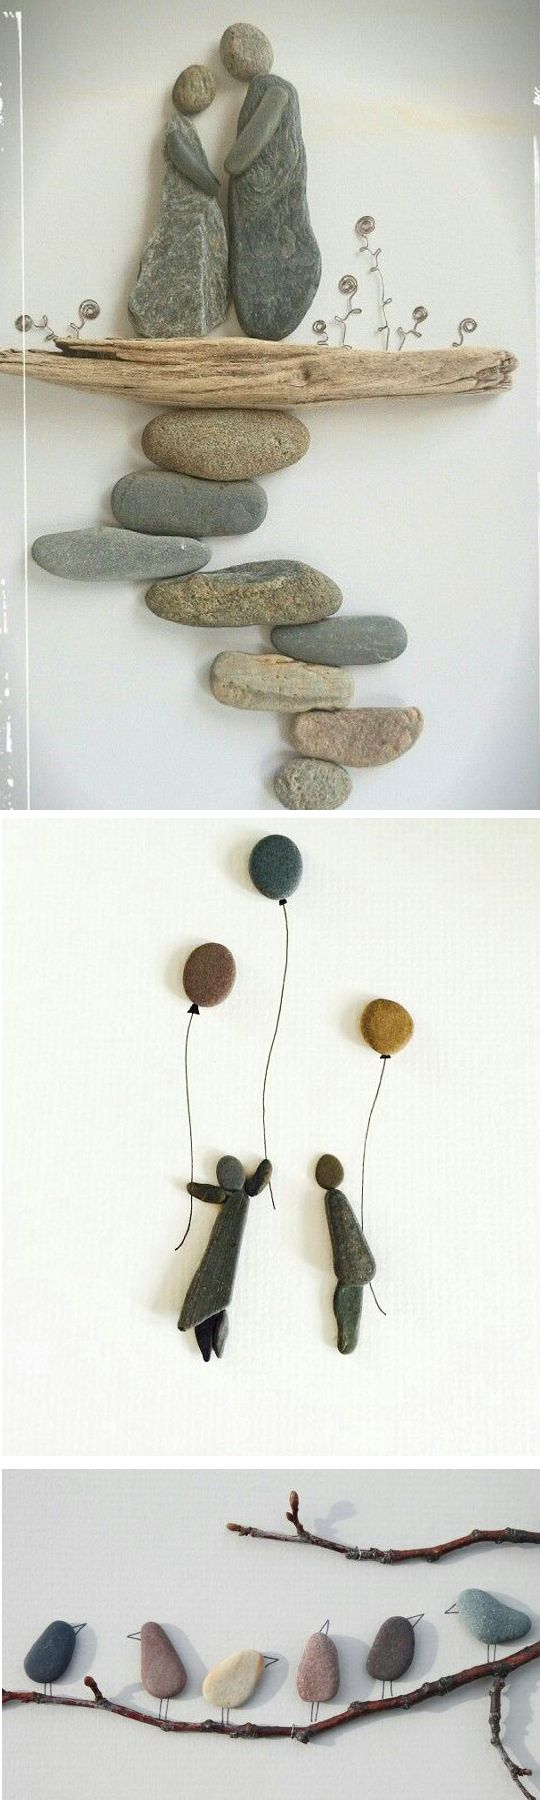 Beautiful inspiration for art with rocks, twigs and other nature items. Natural art would be perfect for a garden or canvas.